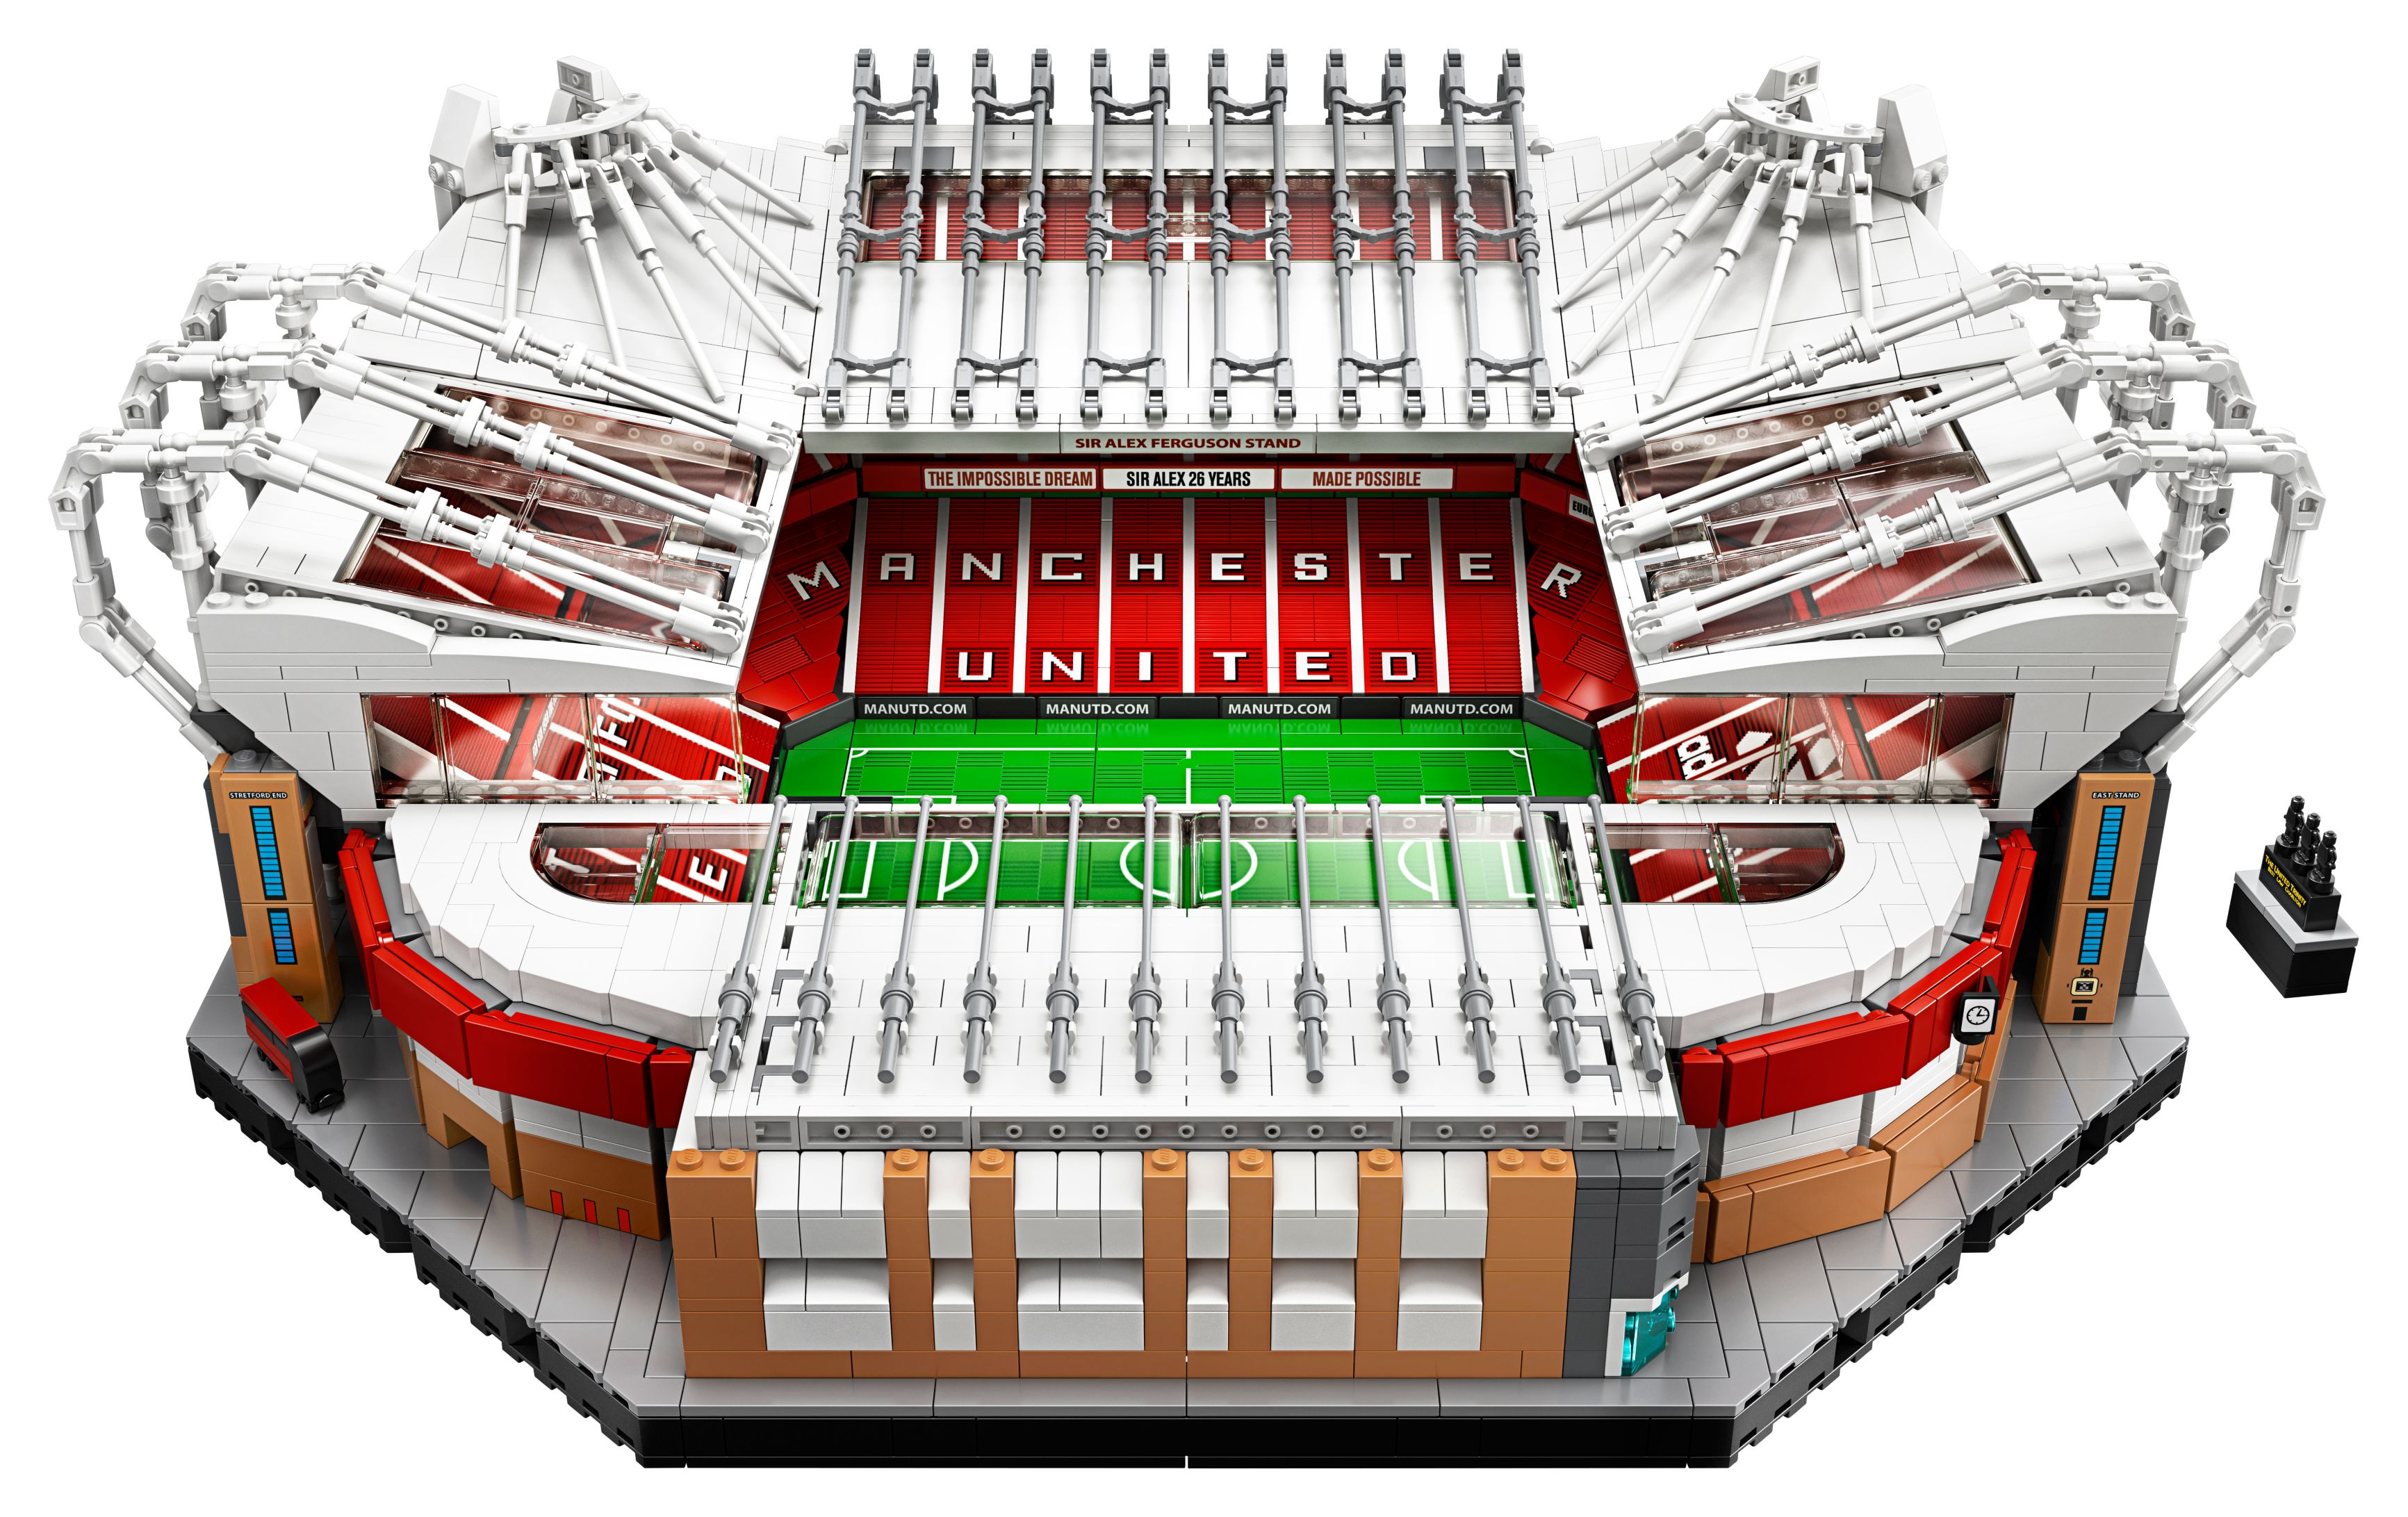 LEGO Advanced Models 10272 Old Trafford - Manchester United LEGO_10272_alt24.jpg